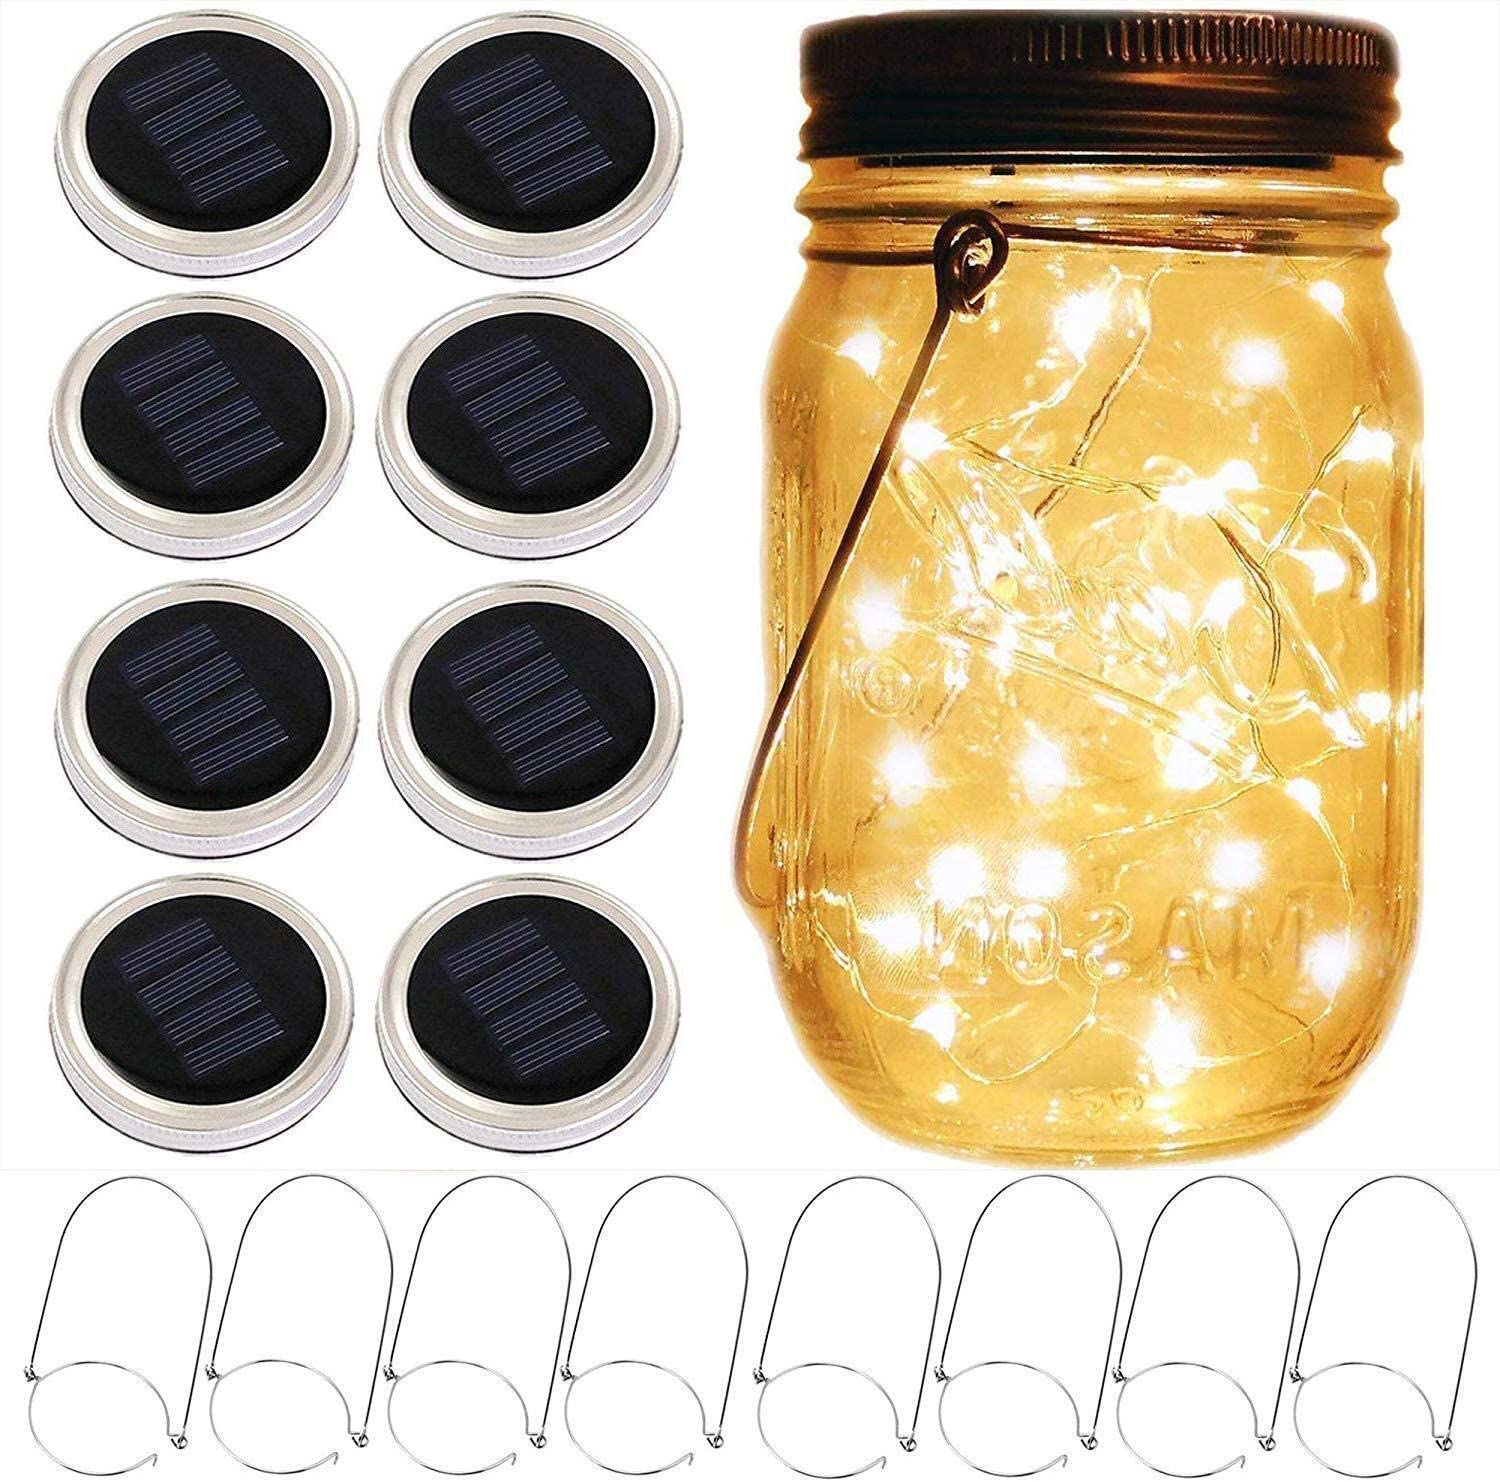 Guirnaldas luminosas Mason Jar Solar Lantern Lights, 8 Pack 10 LED Fairy Star Firefly Solar Lids Jar Lights, 8 perchas incluidas (sin frascos), for Mason Jar Wedding Patio Garden Lanterns Luces de dec